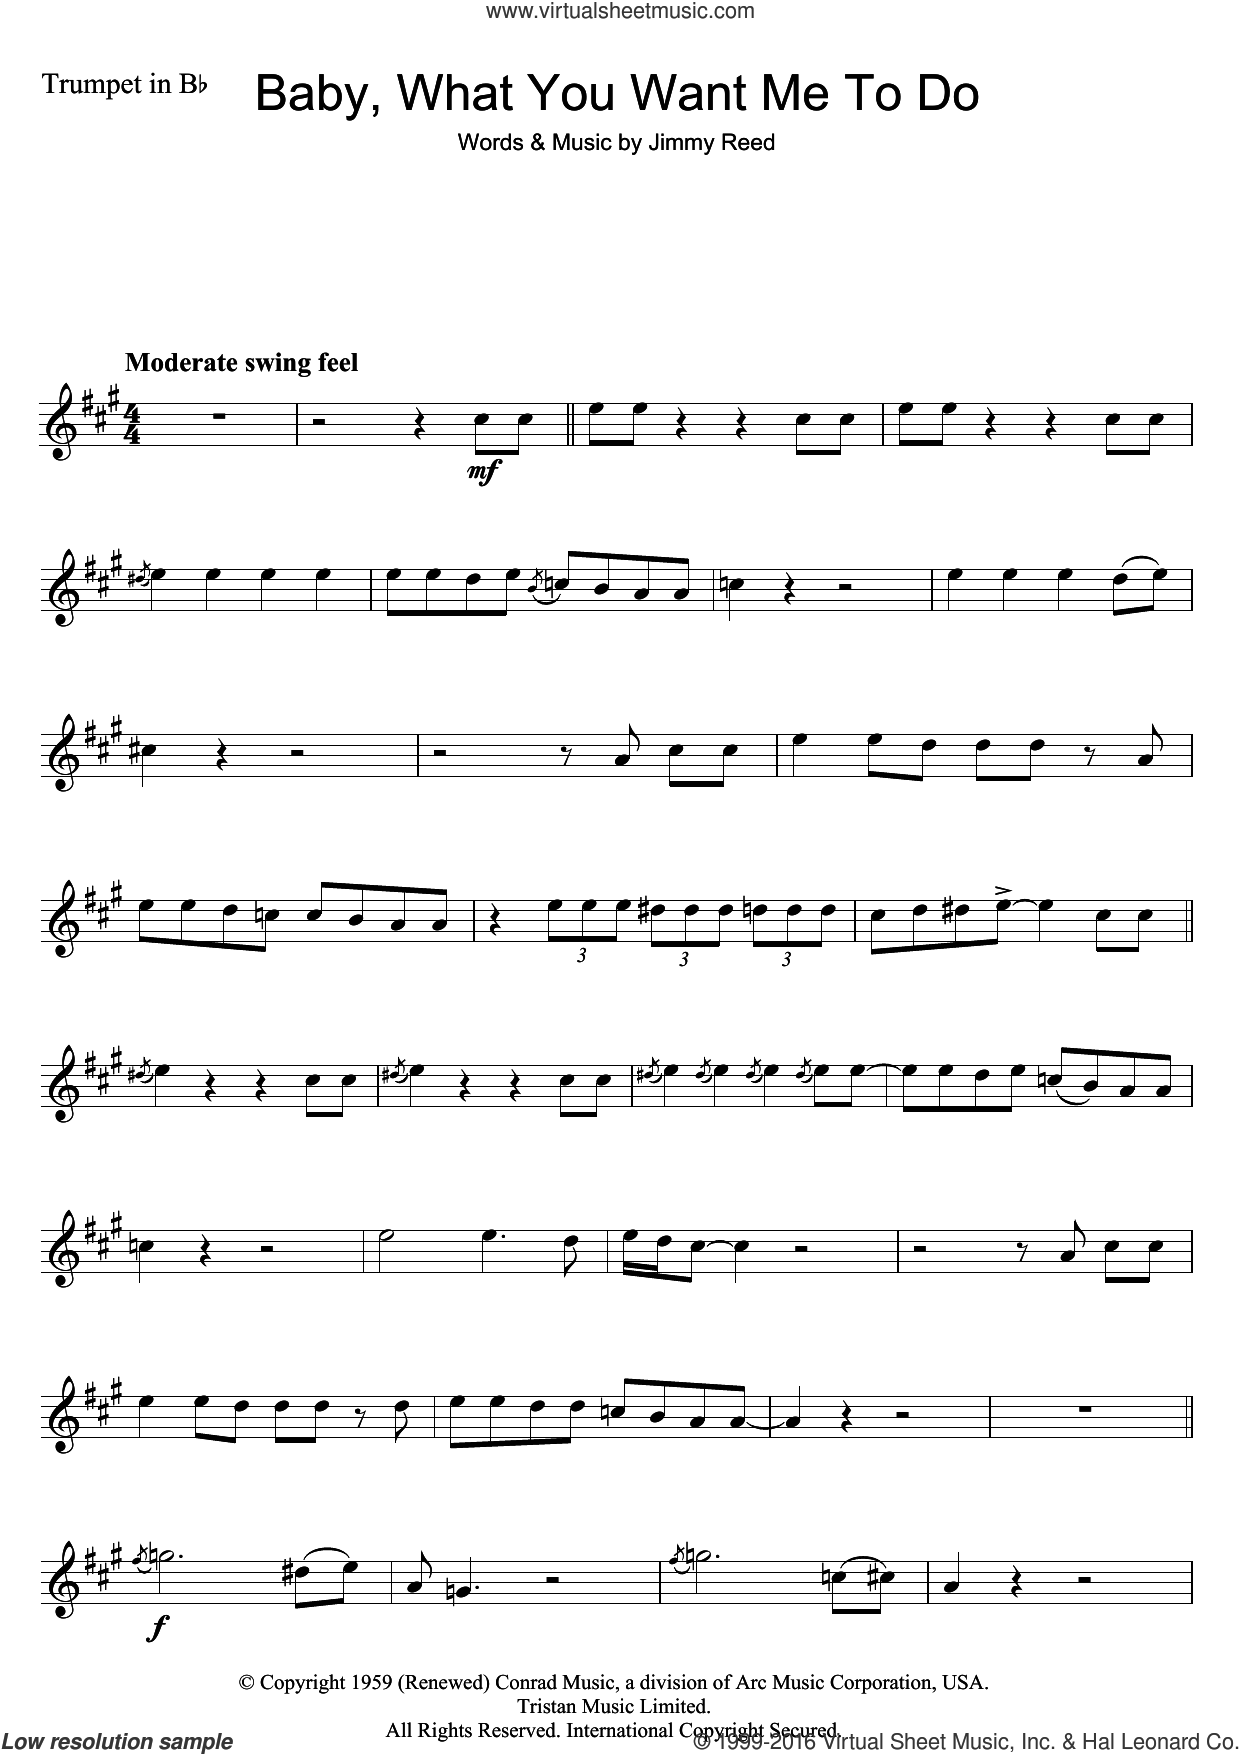 Baby, What You Want Me To Do sheet music for trumpet solo by Etta James and Jimmy Reed, intermediate skill level